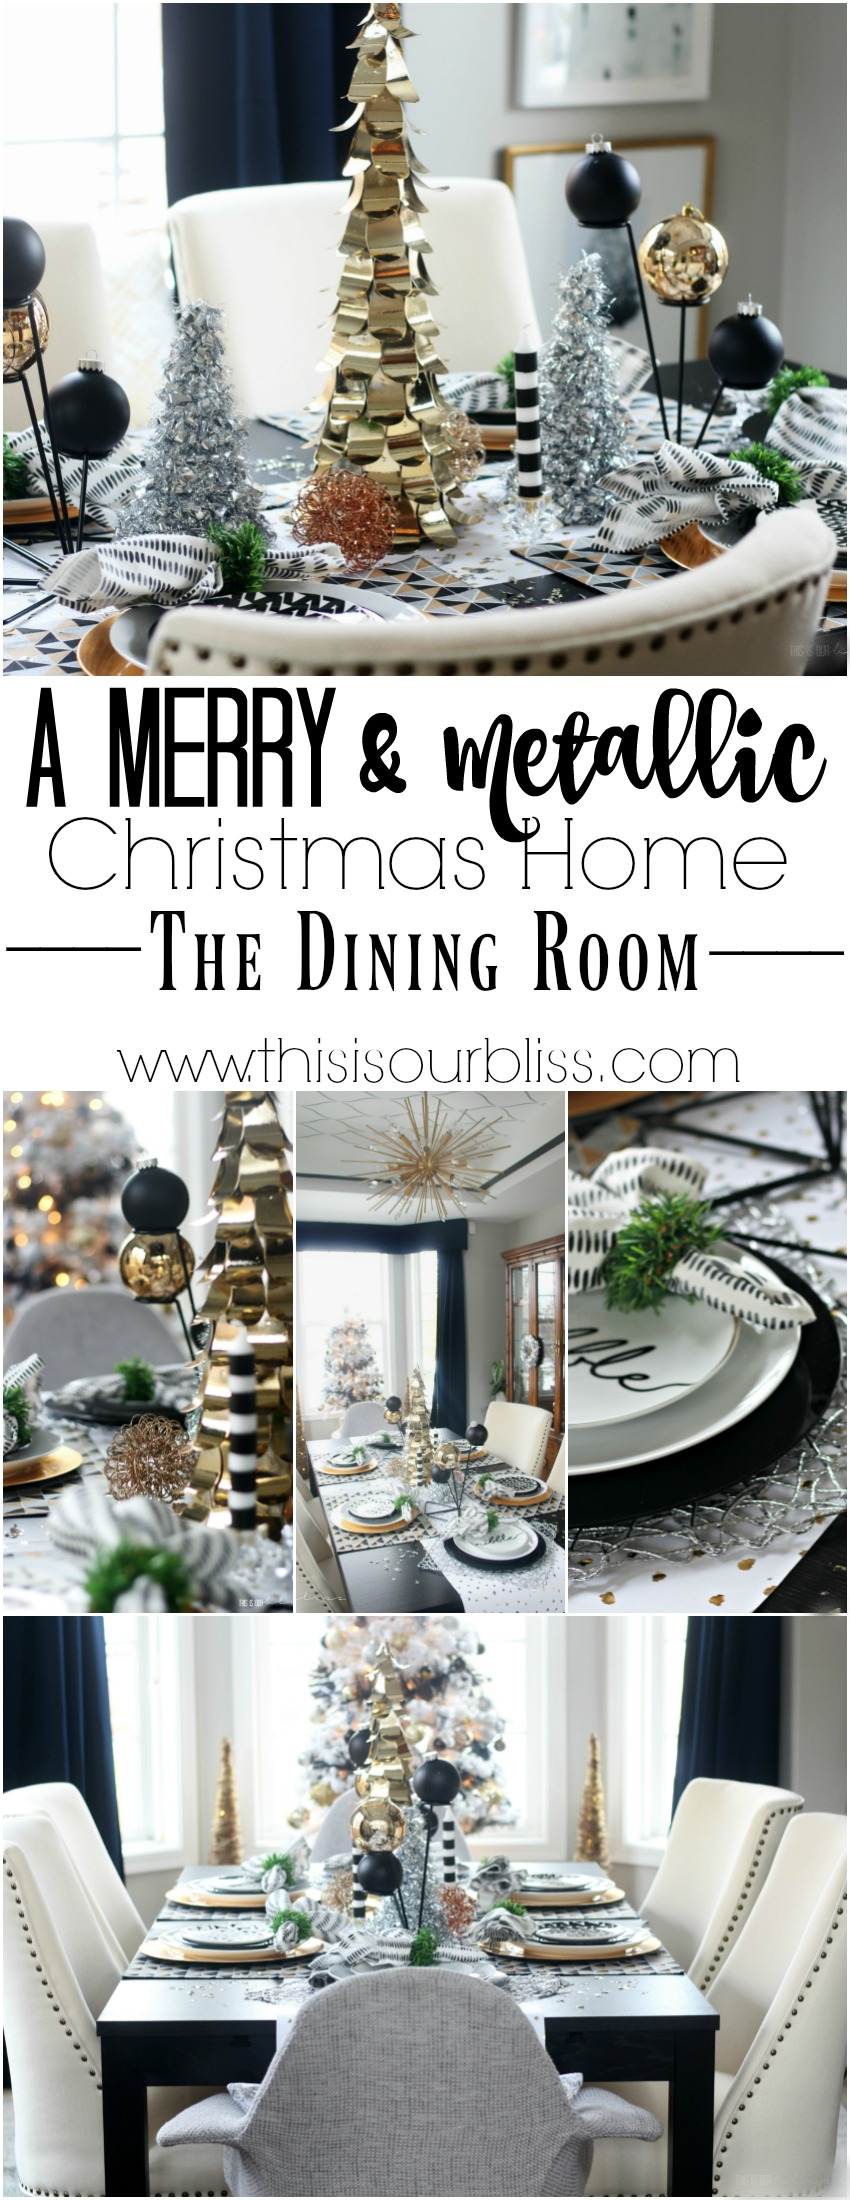 A Merry and Metallic Christmas Home | The Dining Room | This is our Bliss Merry & Metallic Christmas Home Tour 2016